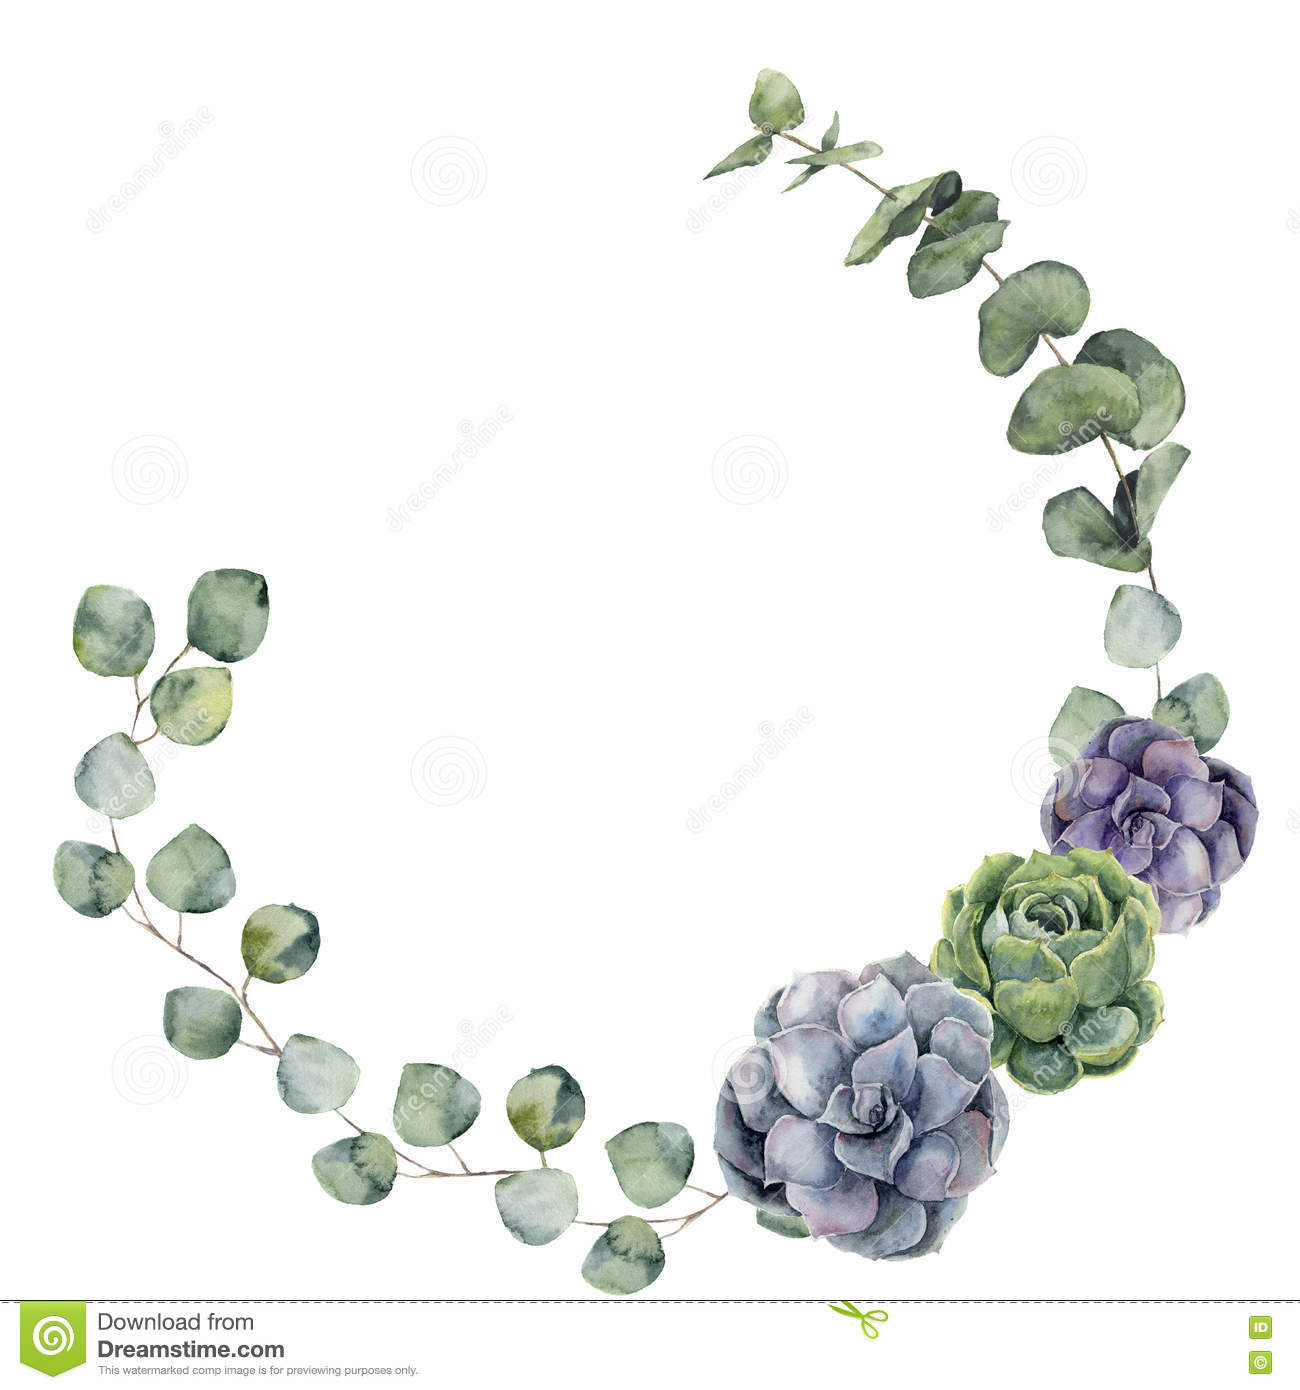 Watercolor floral border with baby, silver dollar eucalyptus leaves and succulent. Hand painted floral wreath with branches, leave